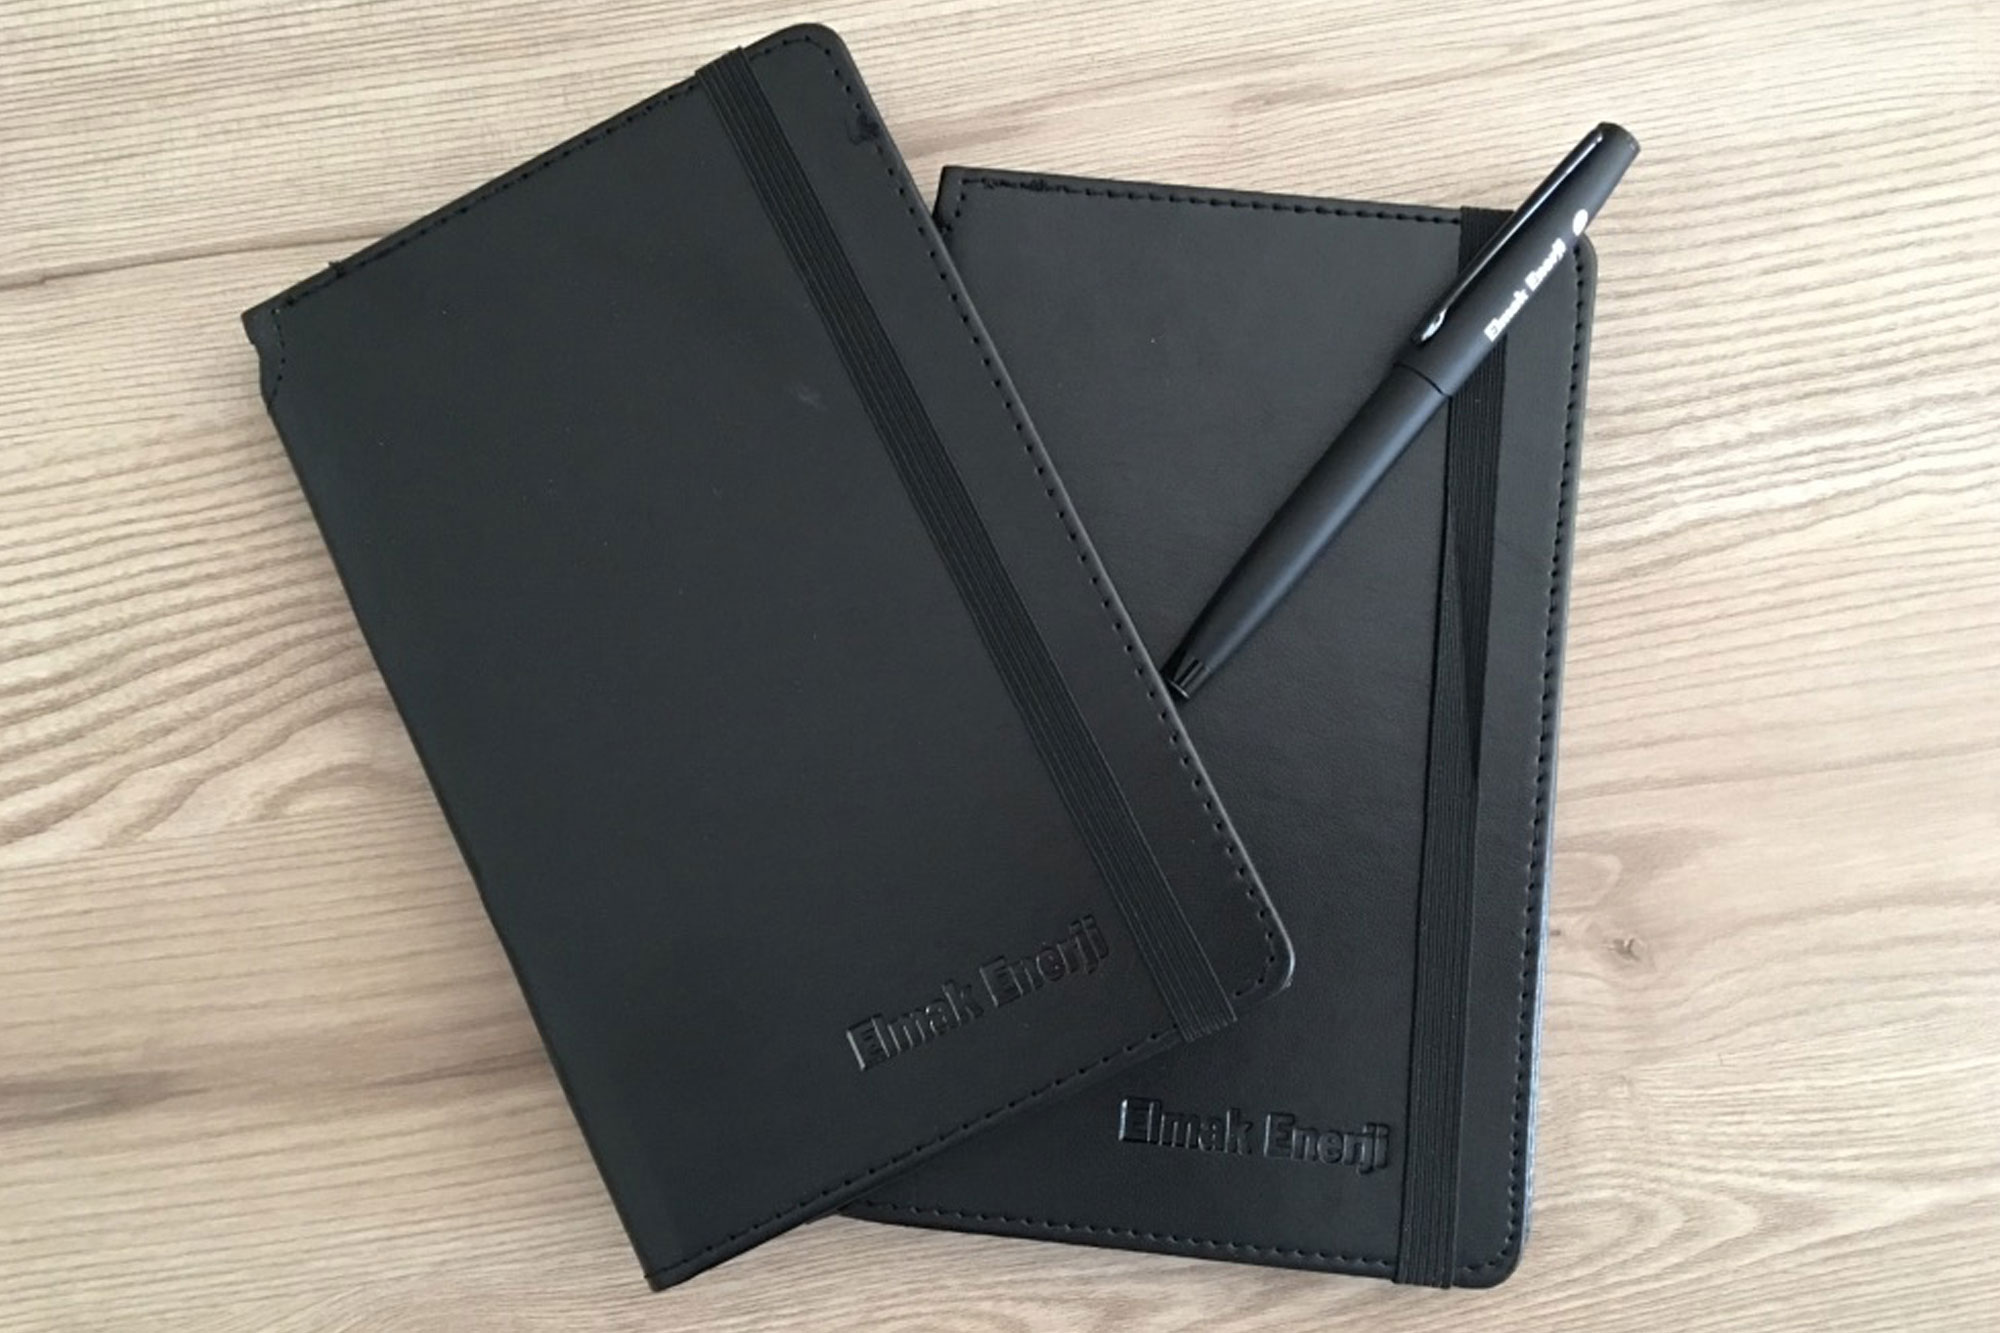 Elmak Energy Notebook